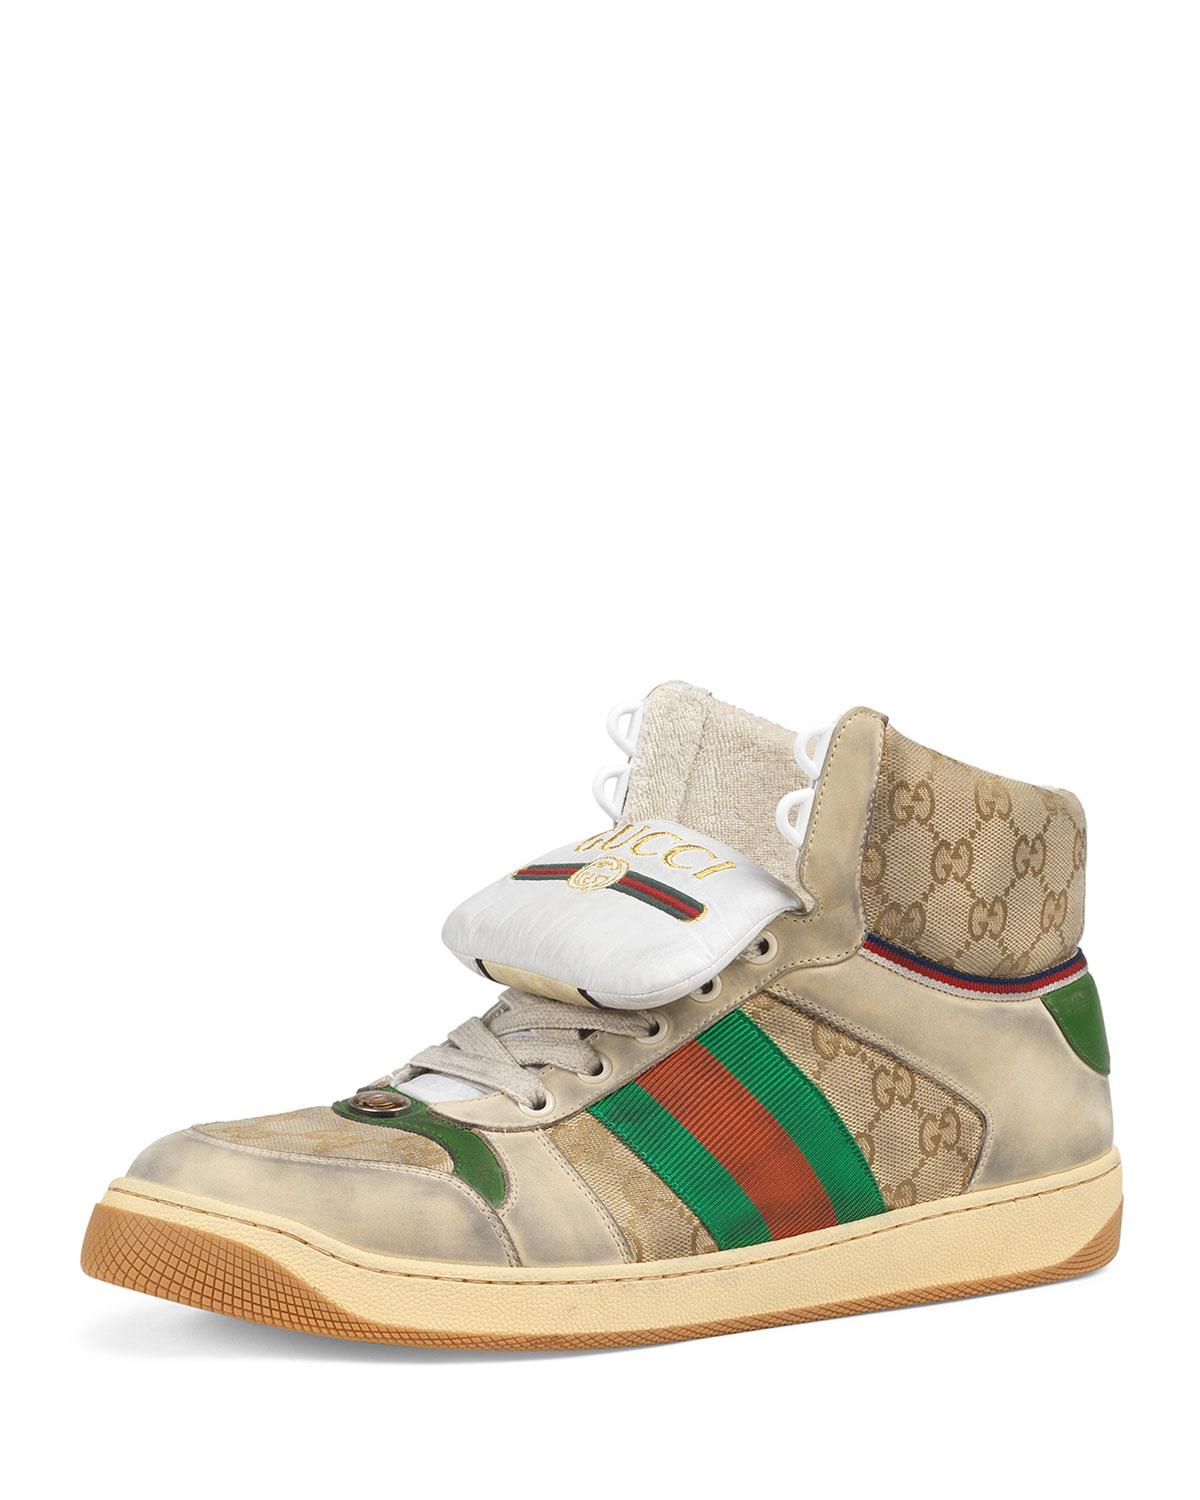 42d423ed13 Men's Screener High-Top GG Canvas Sneakers